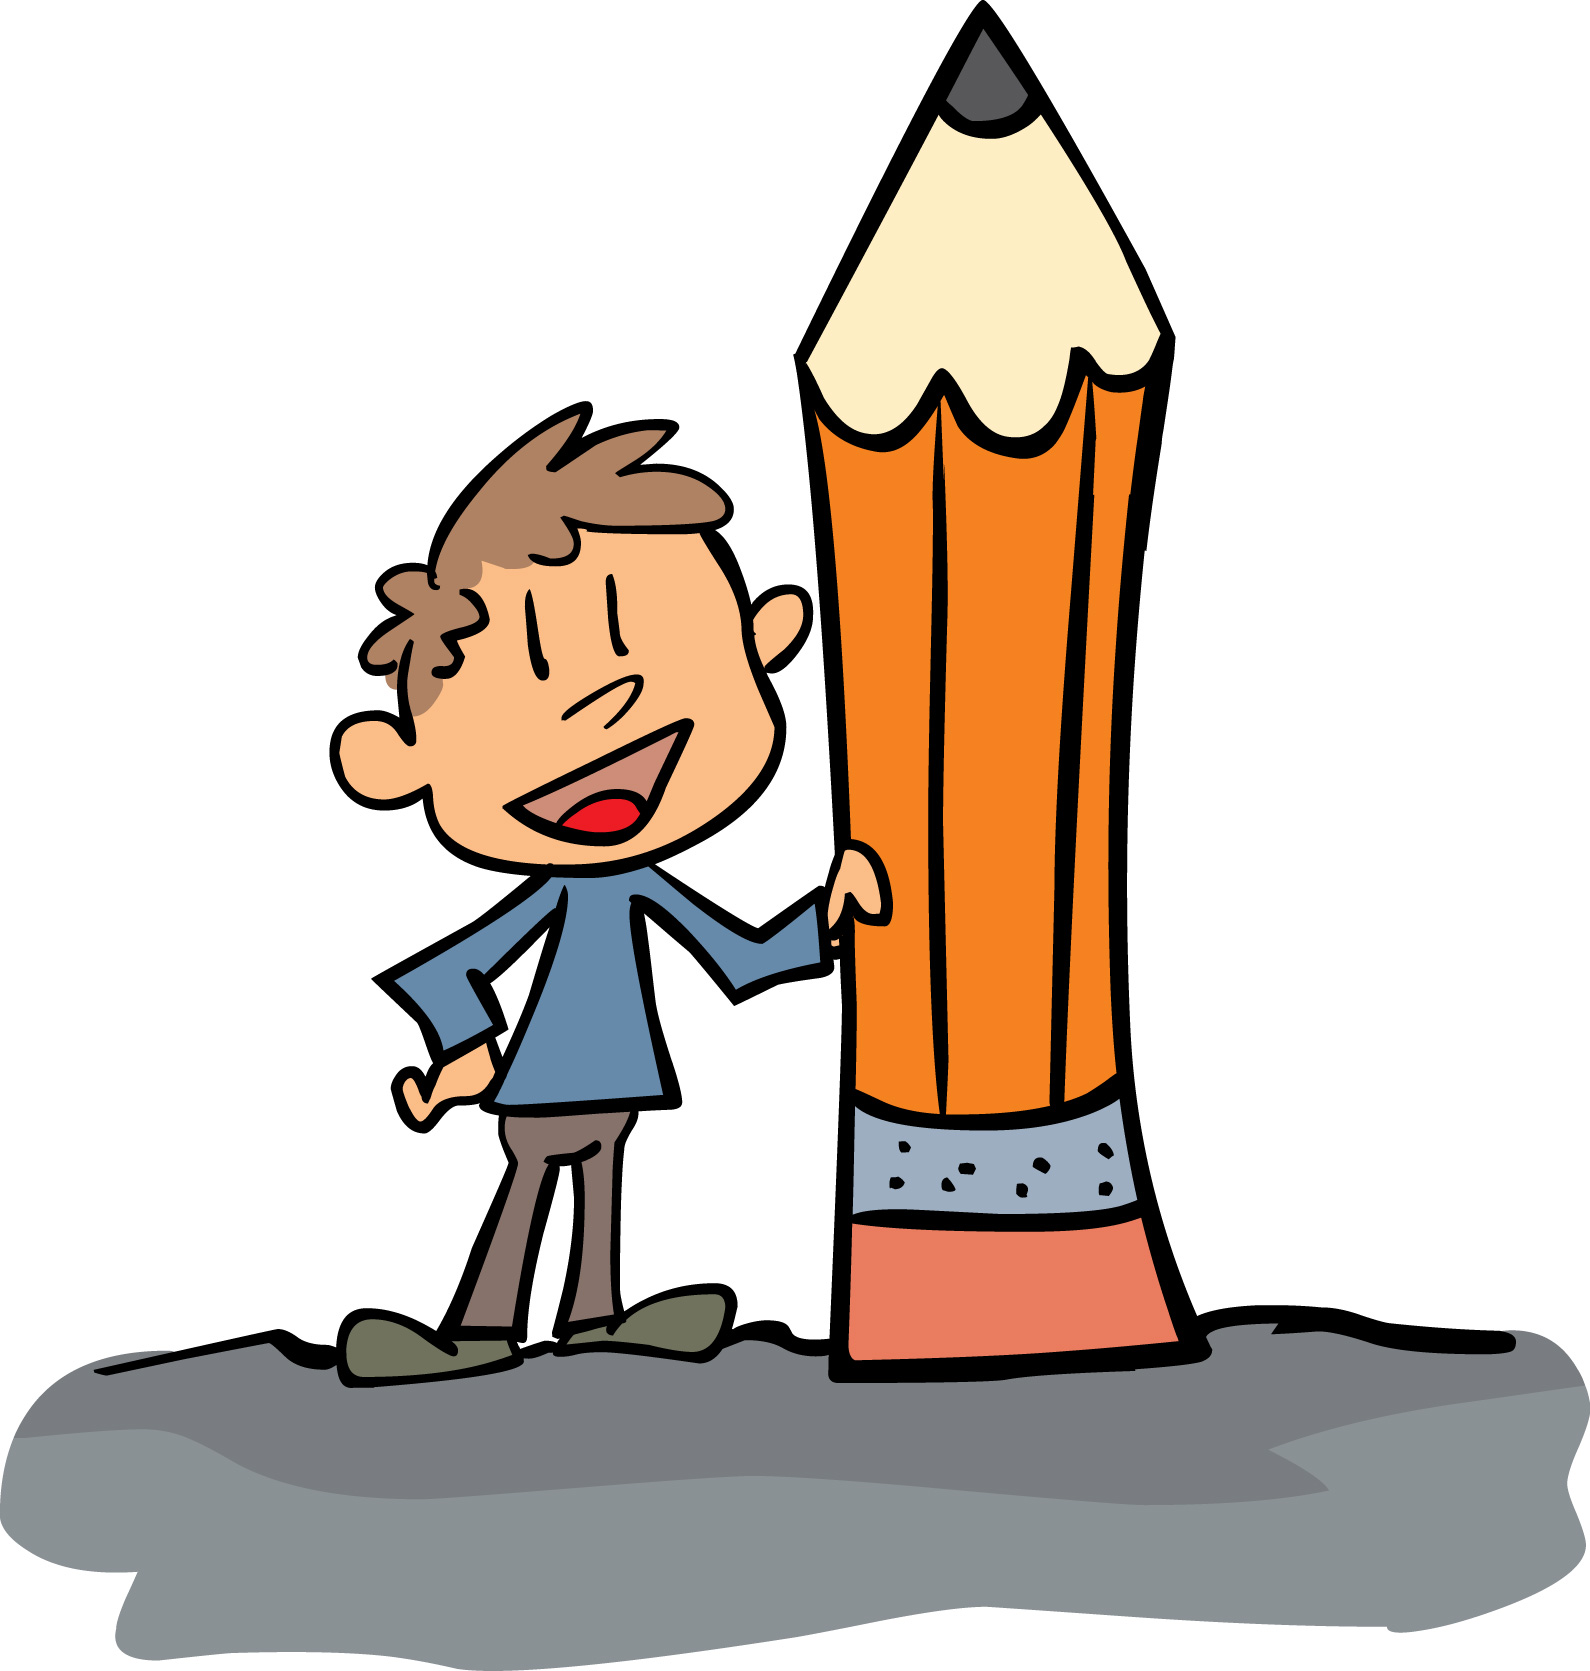 Free Animated Clipart For .-free animated clipart for .-10